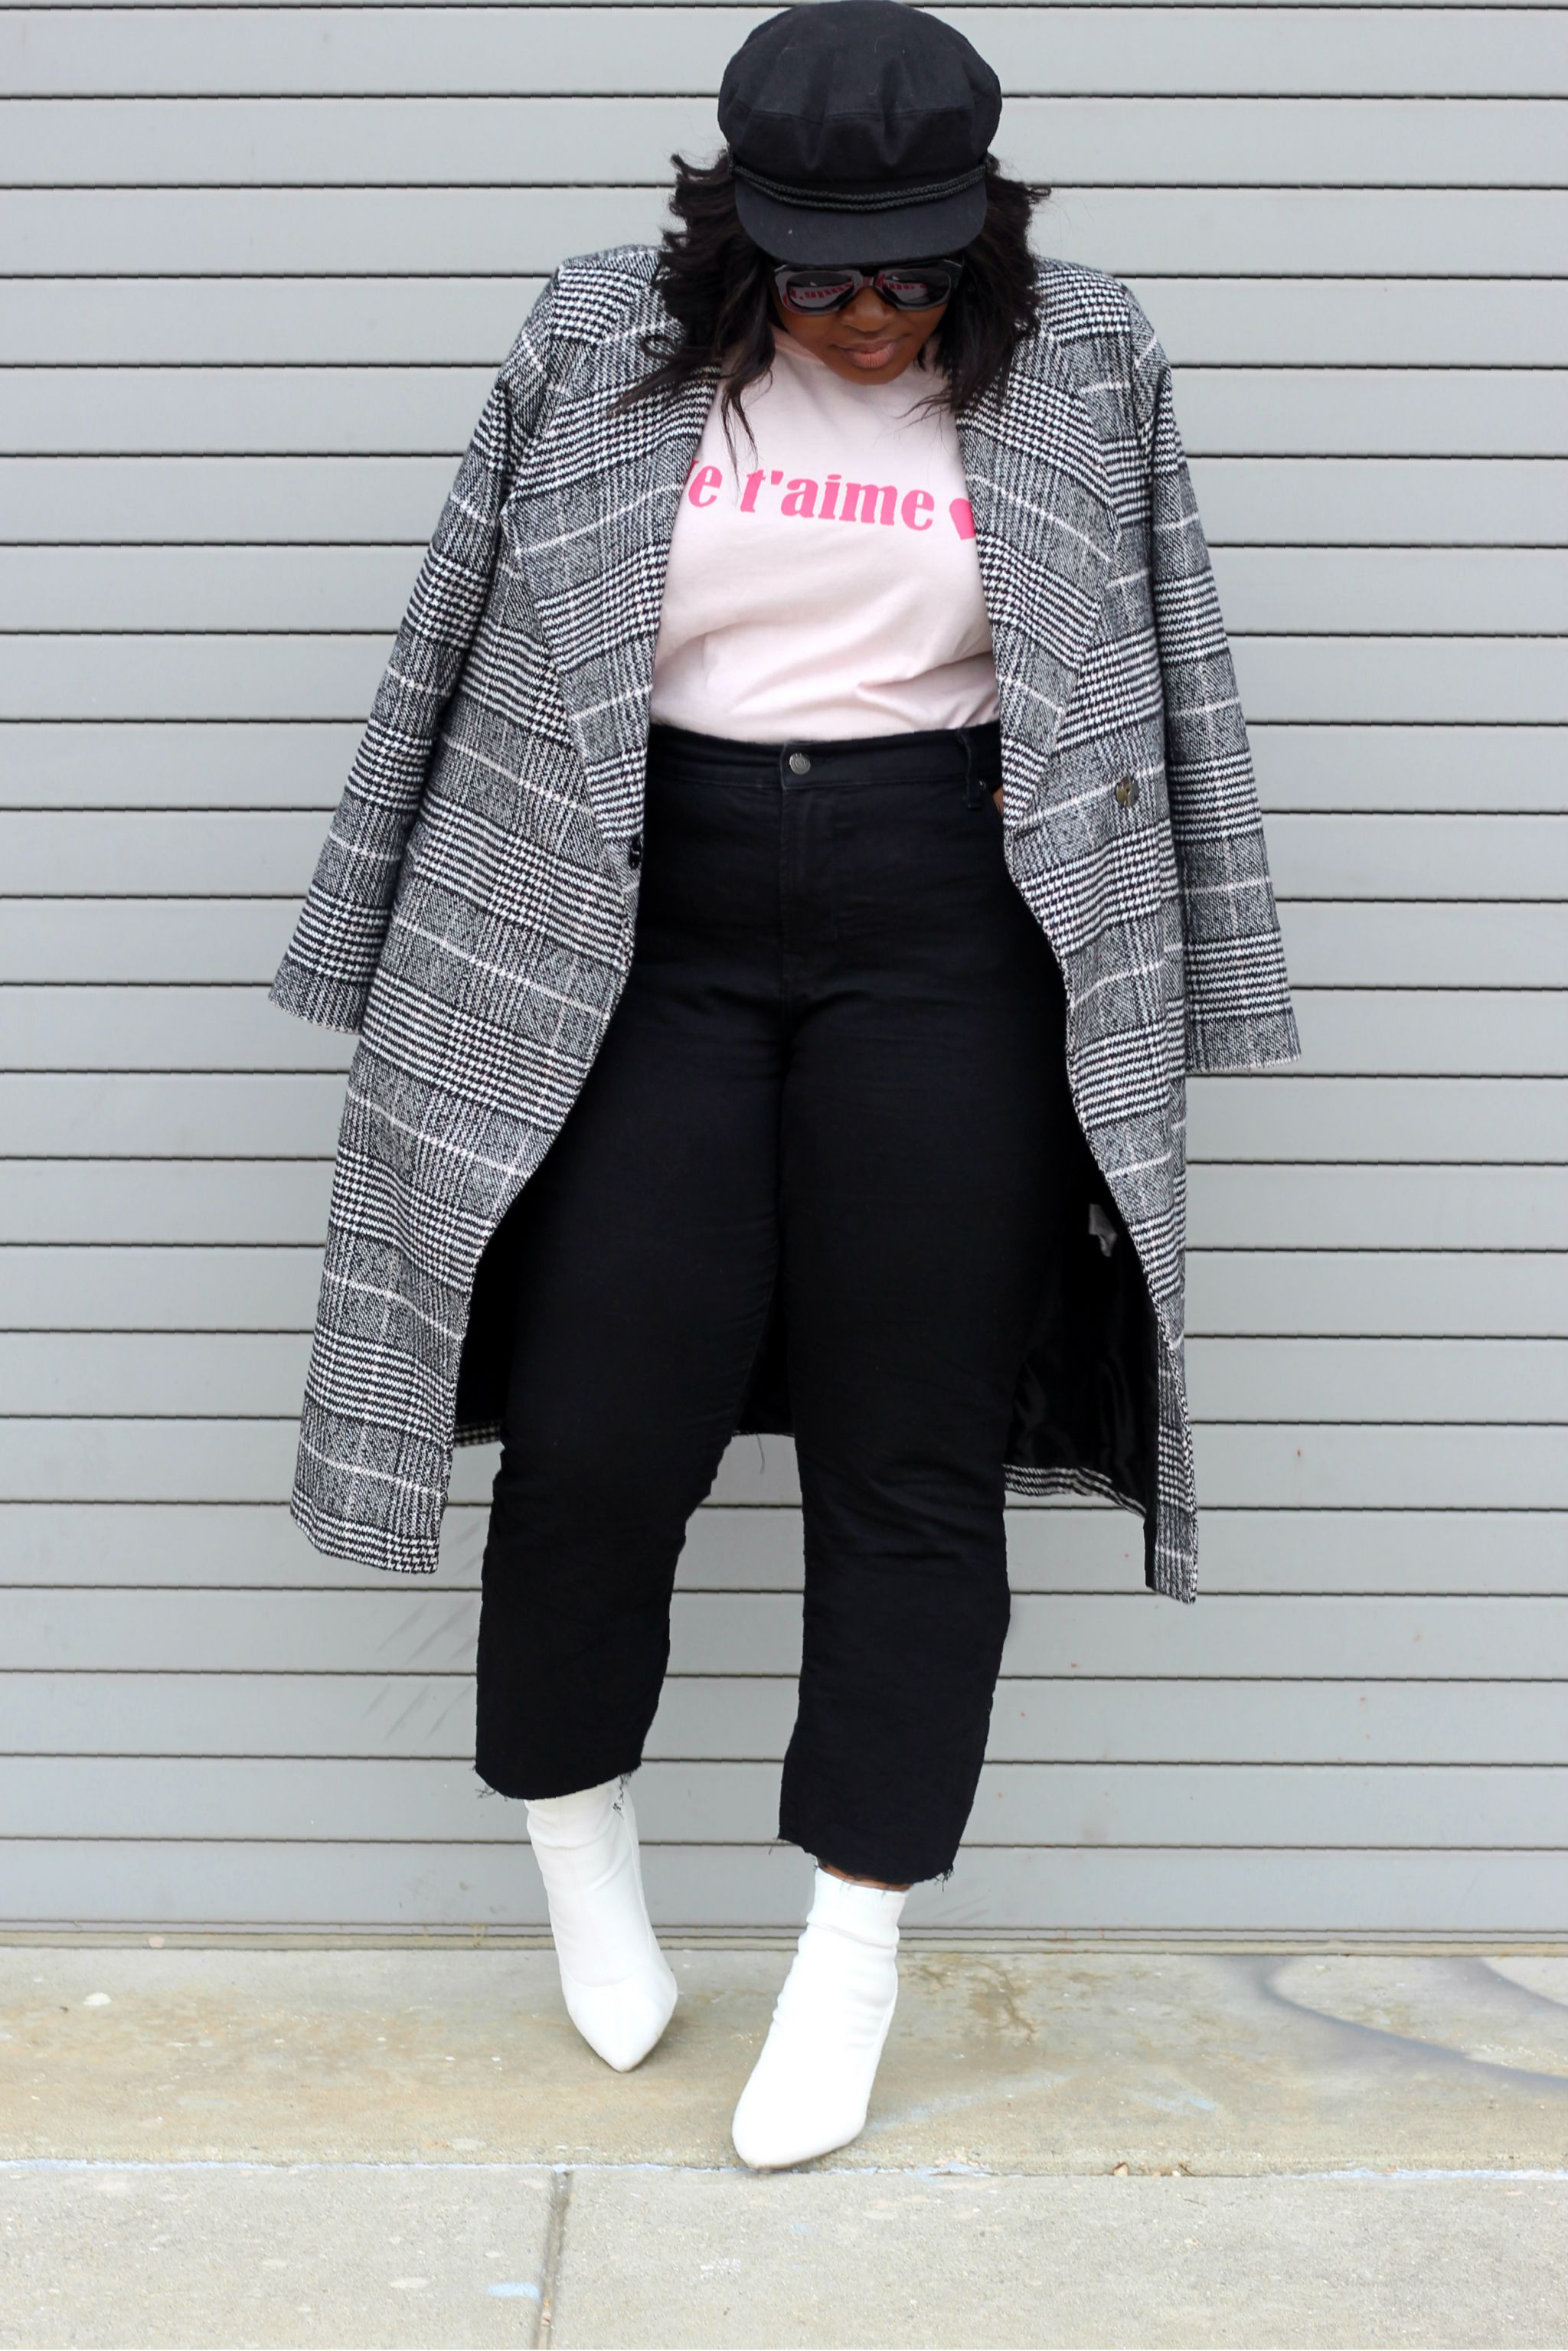 plaid coat outfit valentines day